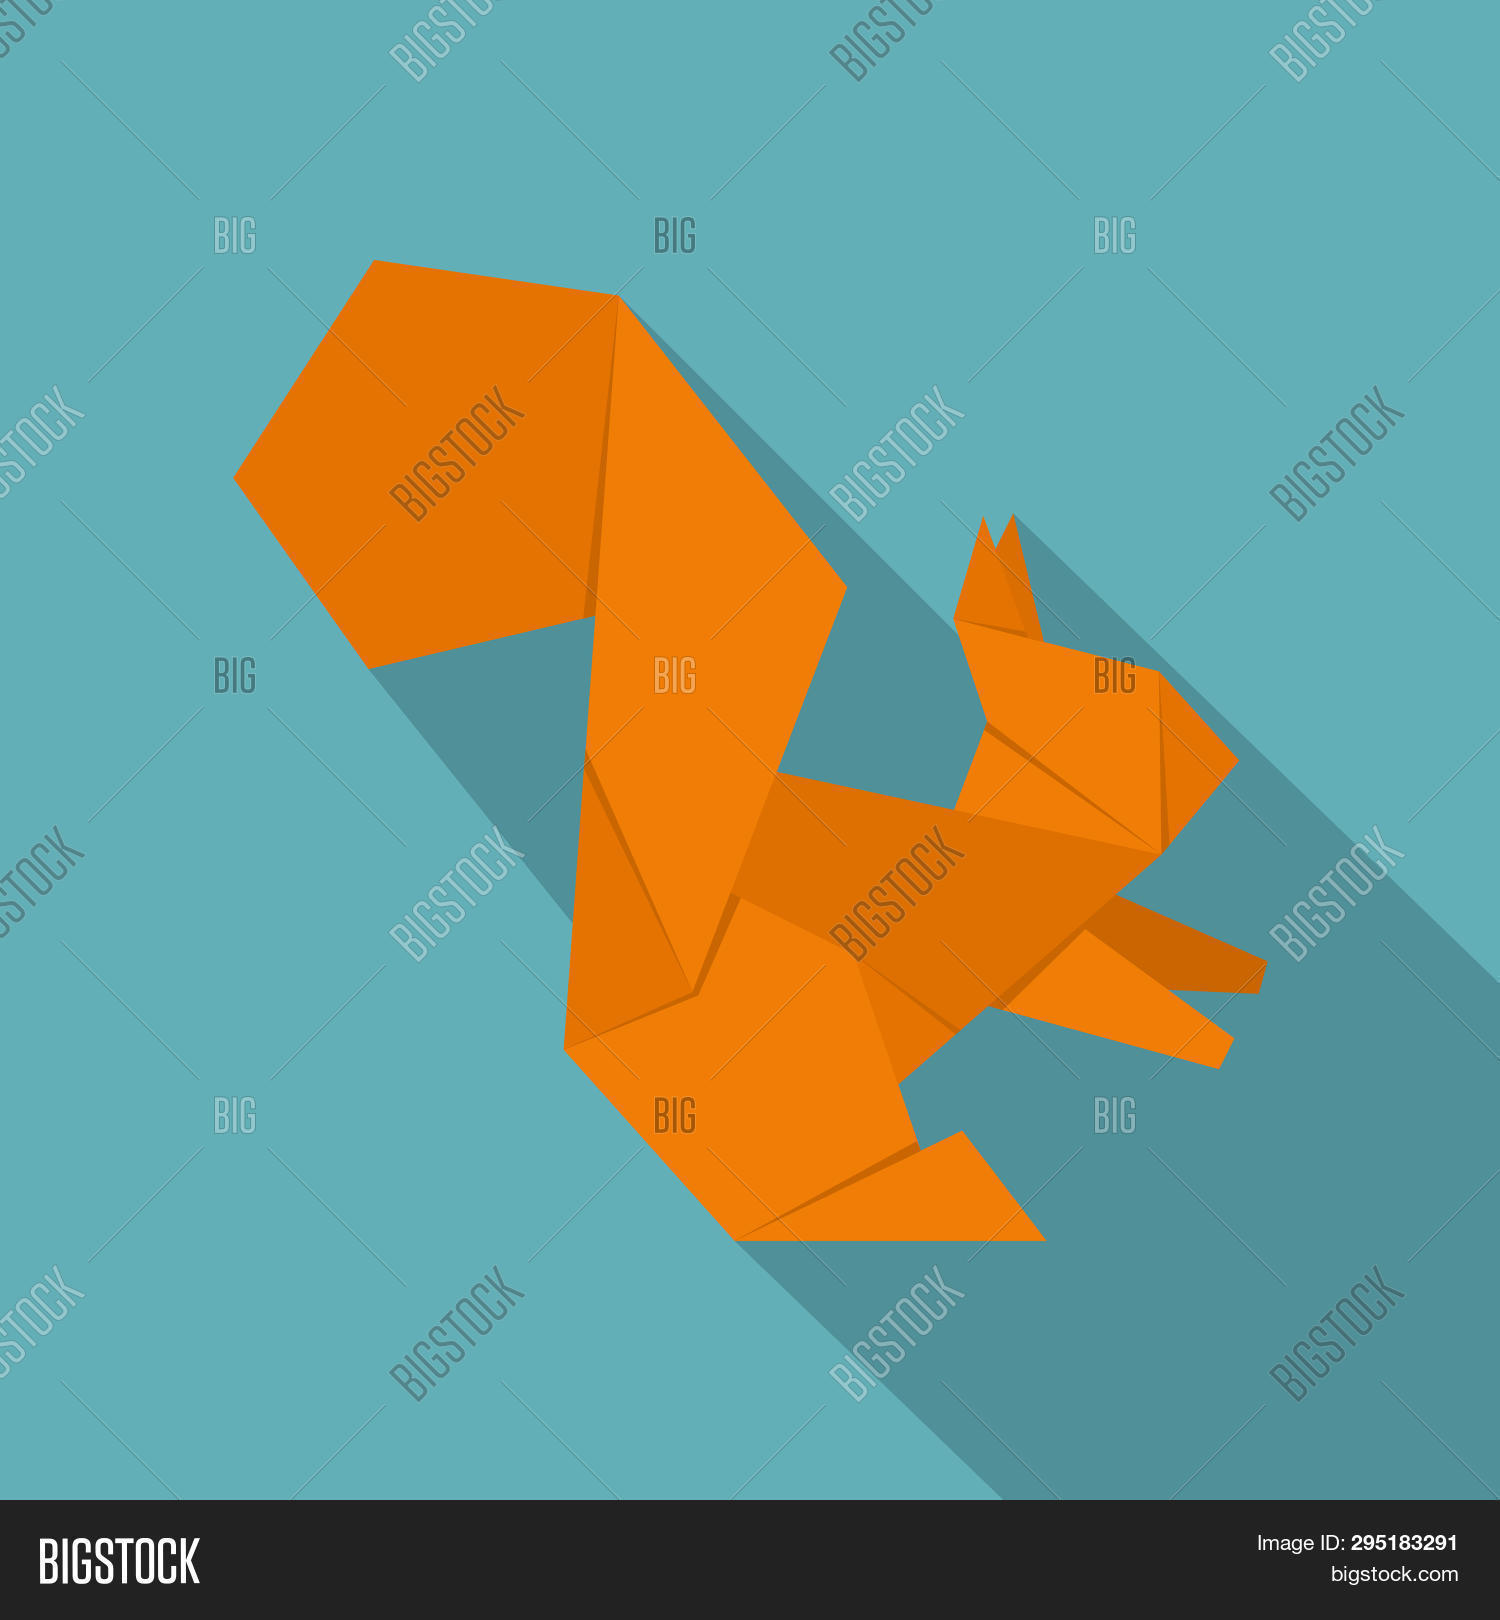 Origami Squirrel - Easy Origami Tutorial OLD VERSION - How to make an origami  squirrel - YouTube | 1620x1500